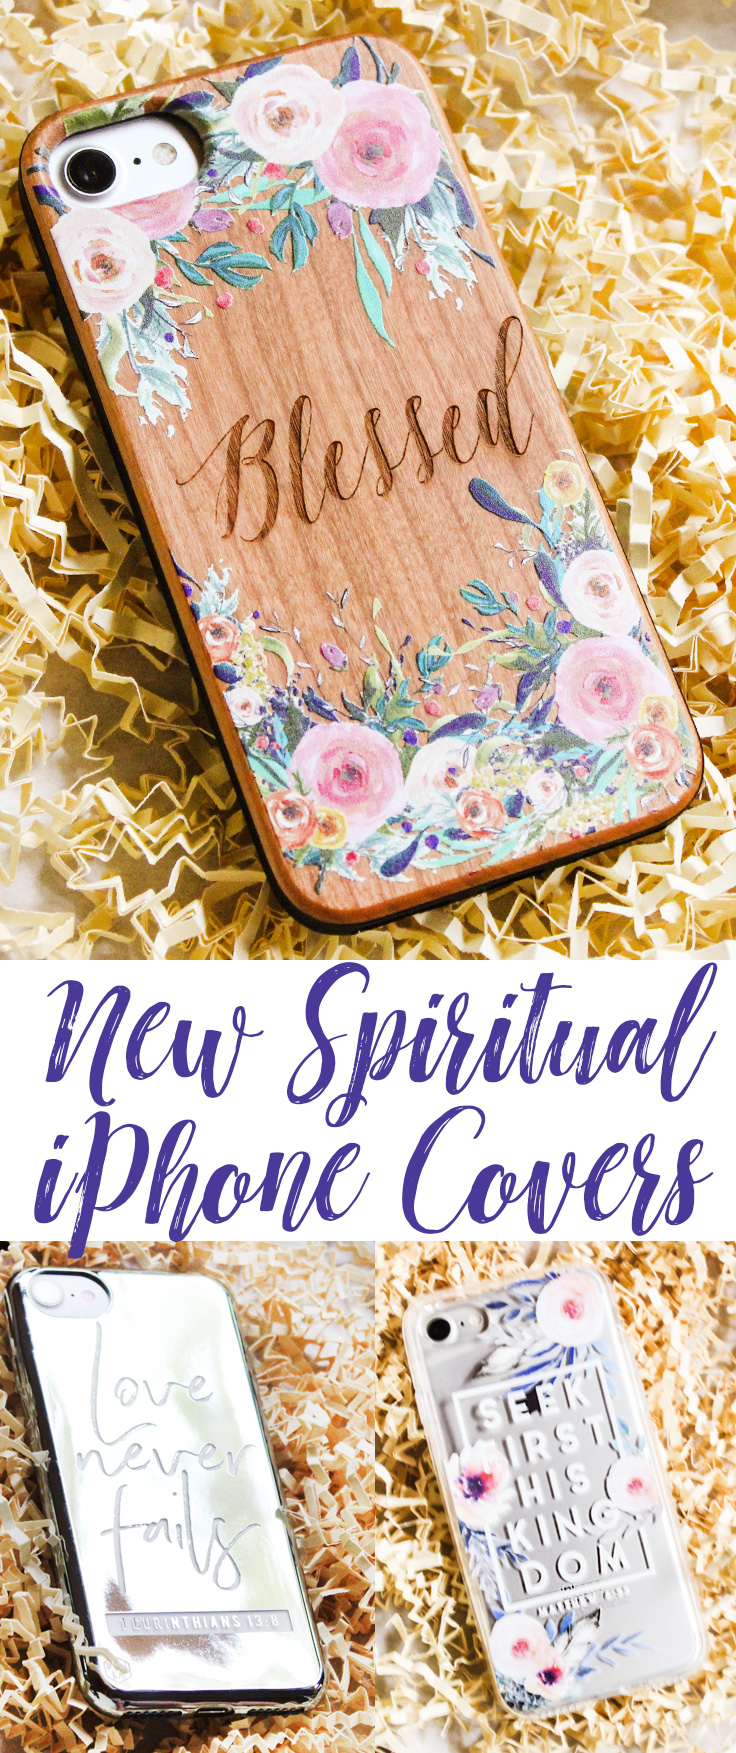 Three New Spiritual Phone Covers and Giveaway!